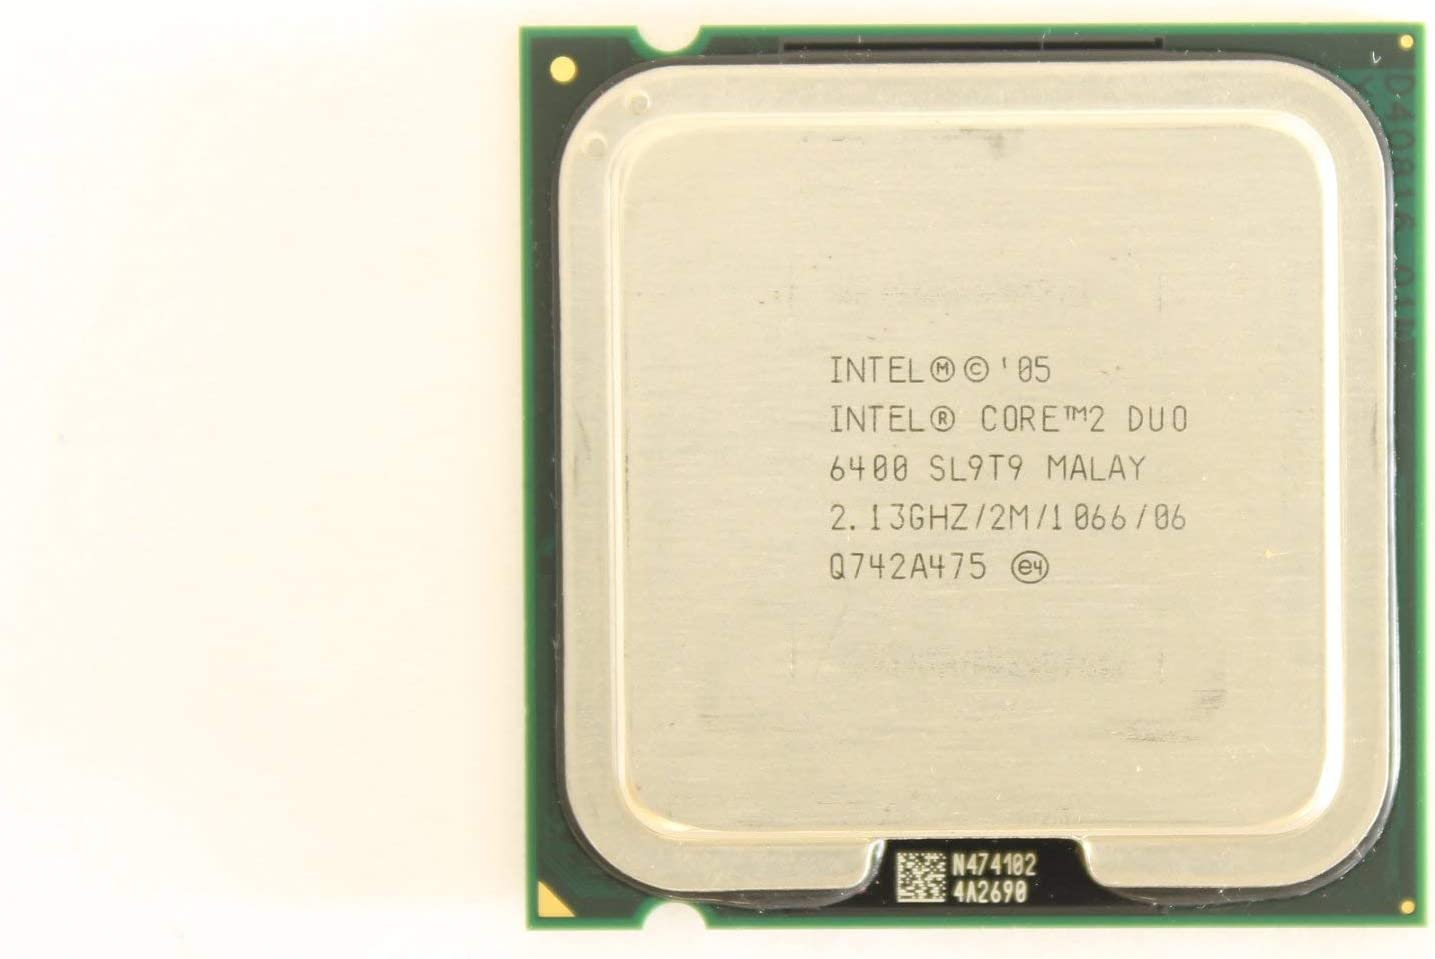 Intel 2.13 GHz Core 2 Duo CPU Processor GM152 E6400 SL9T9 Dell Dimension 9200 E520 Optiplex 745 Prec (Renewed)